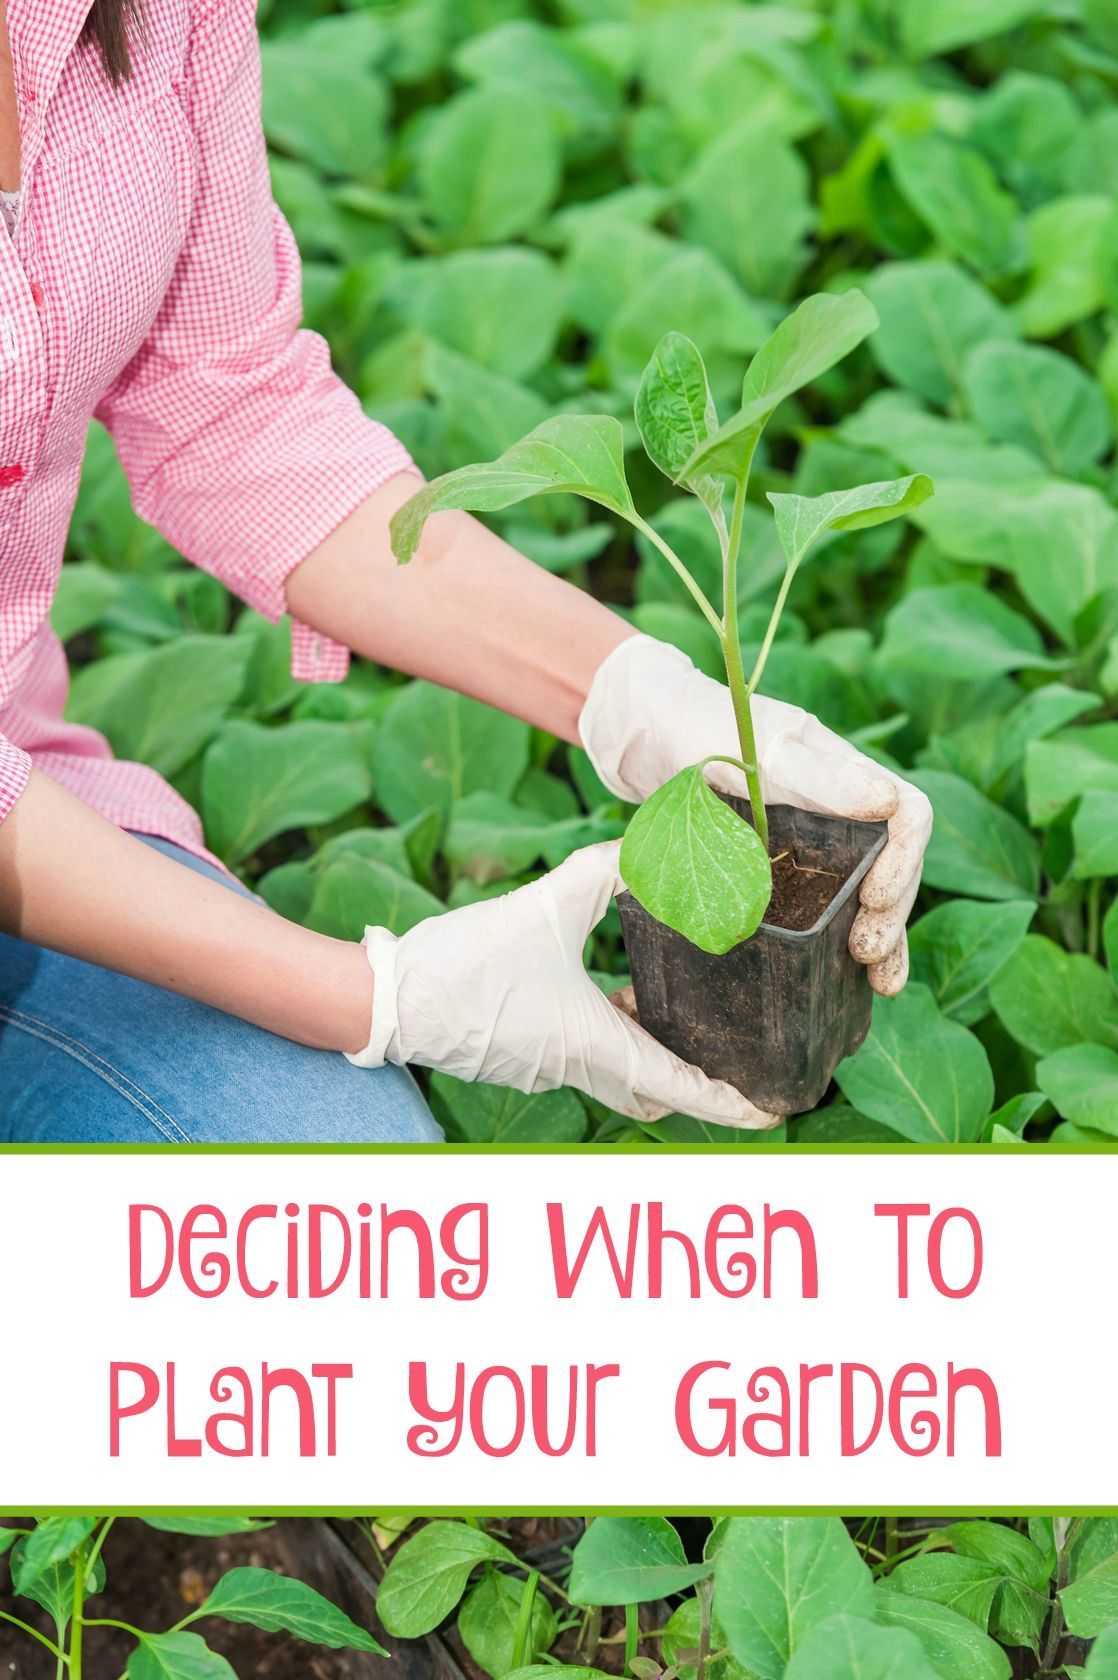 Deciding When to Plant Your Garden